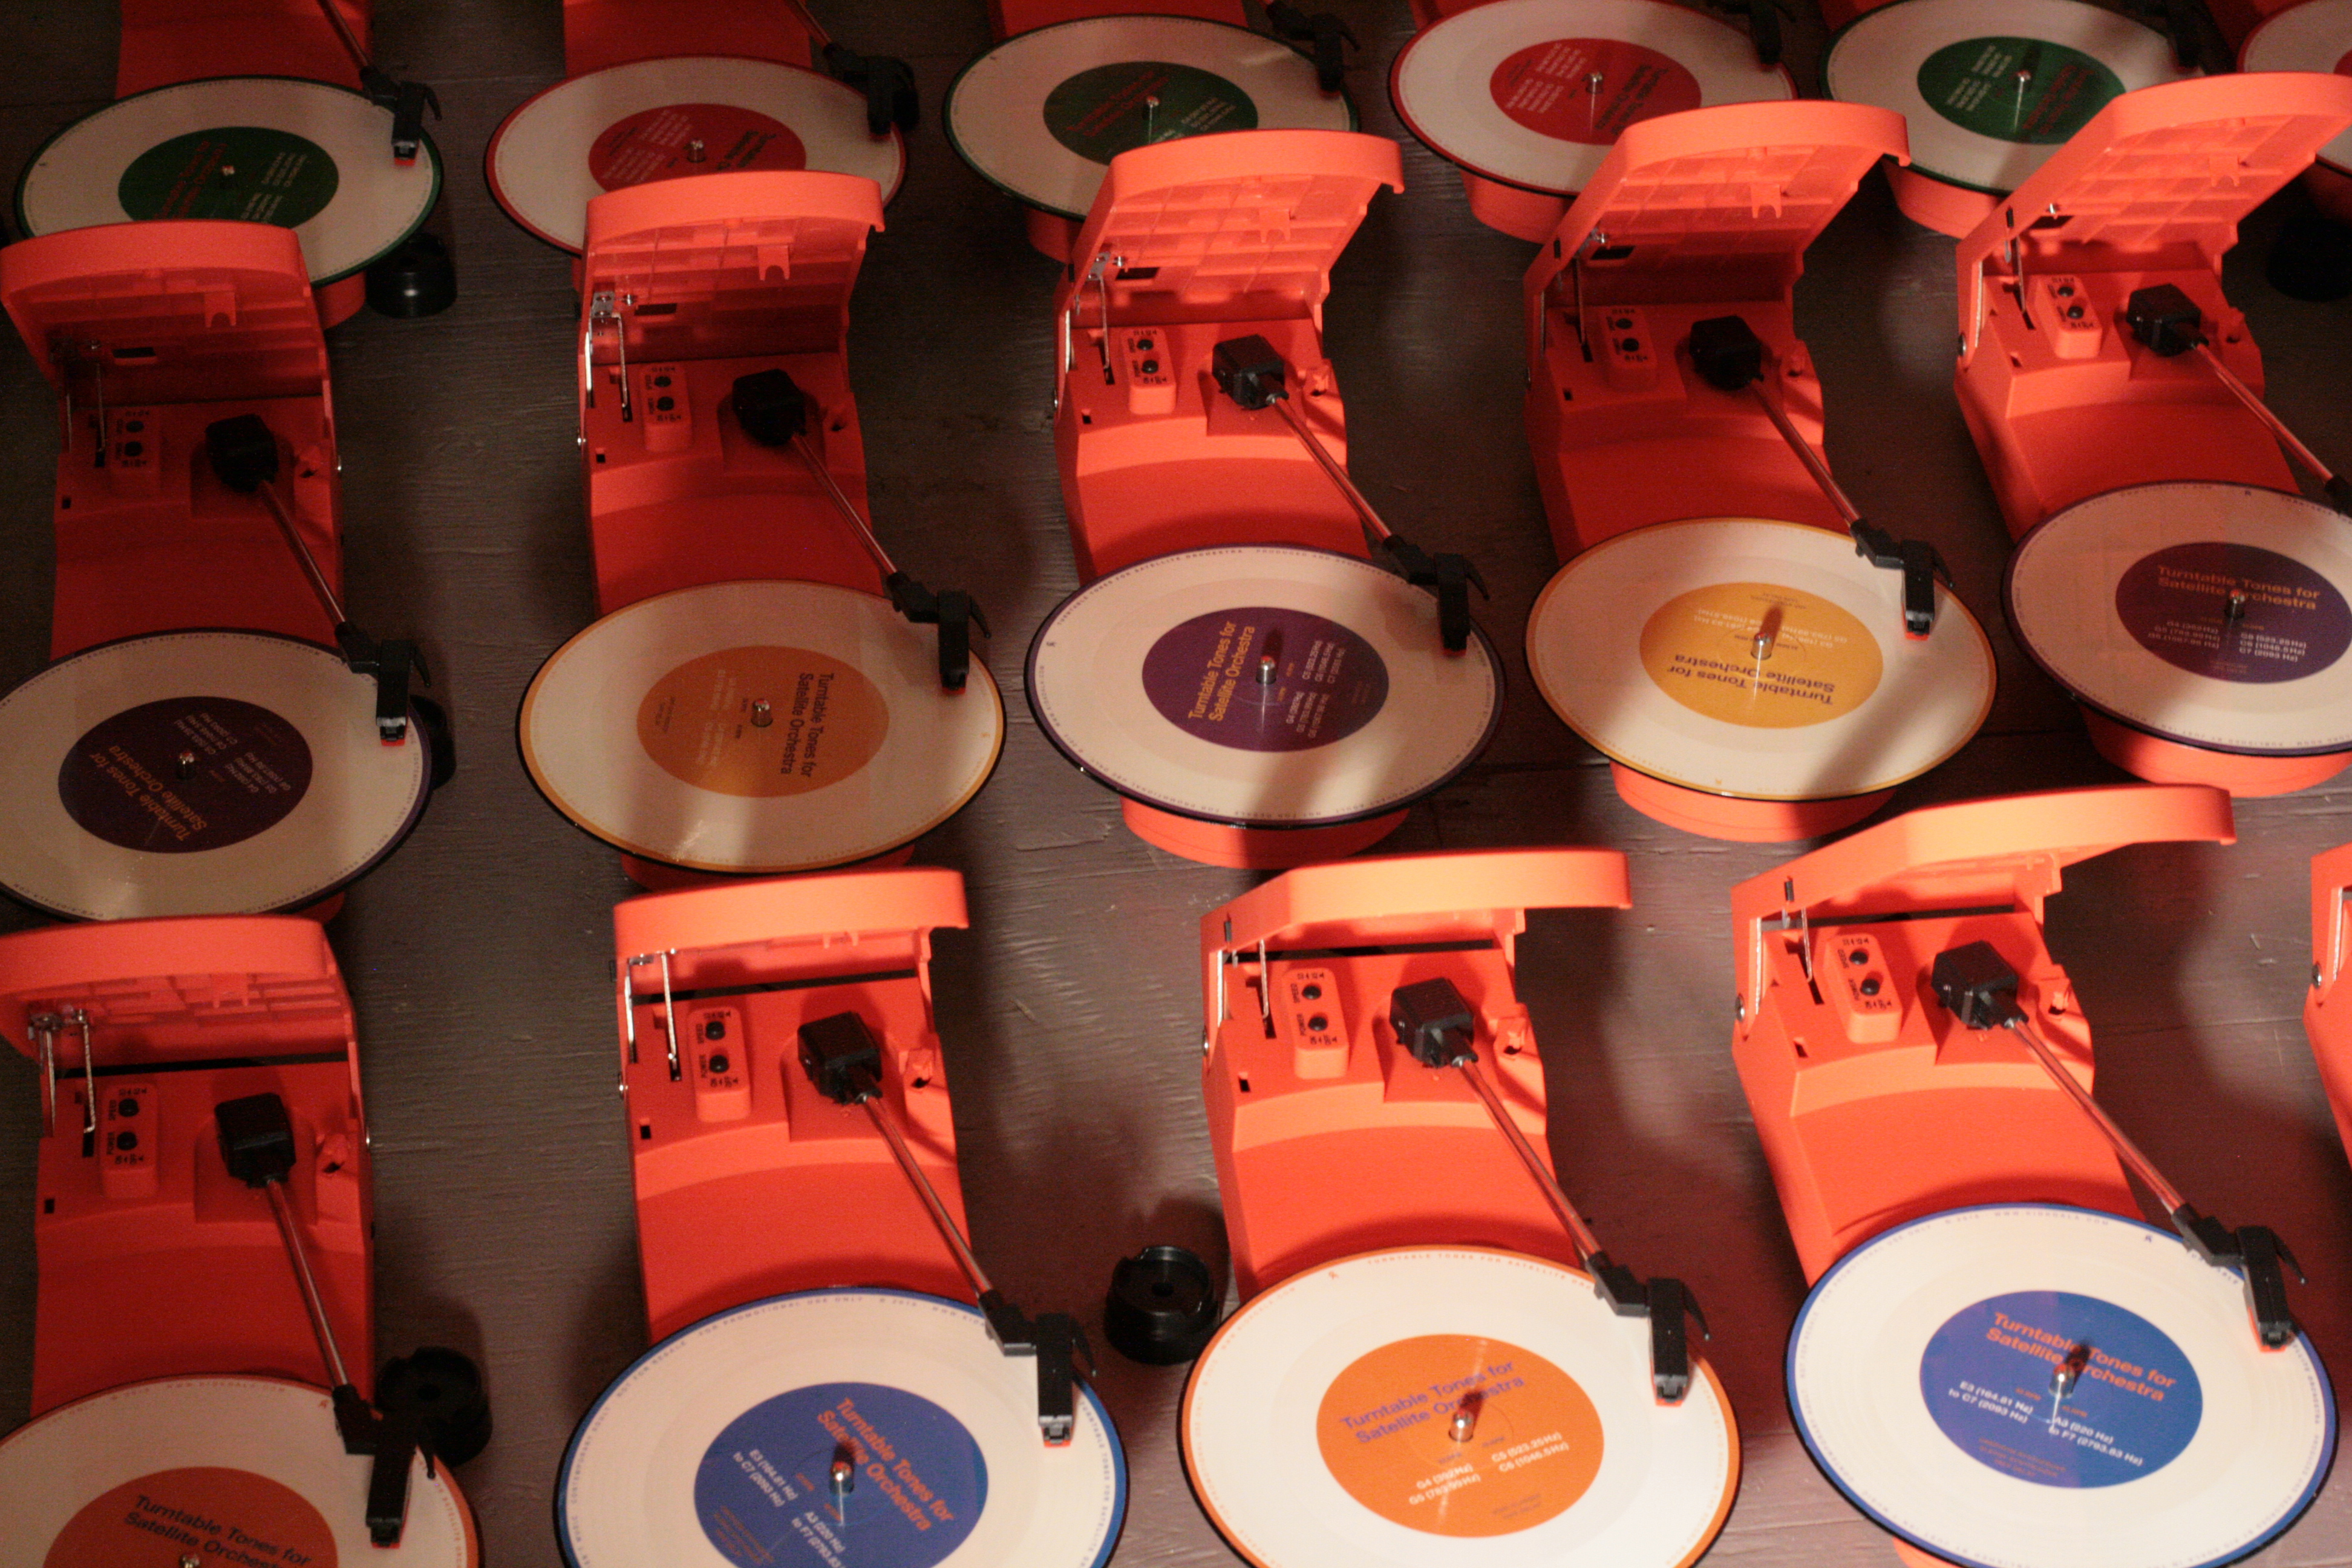 image of turntables used in Kid Koala's Satellite Orchestra